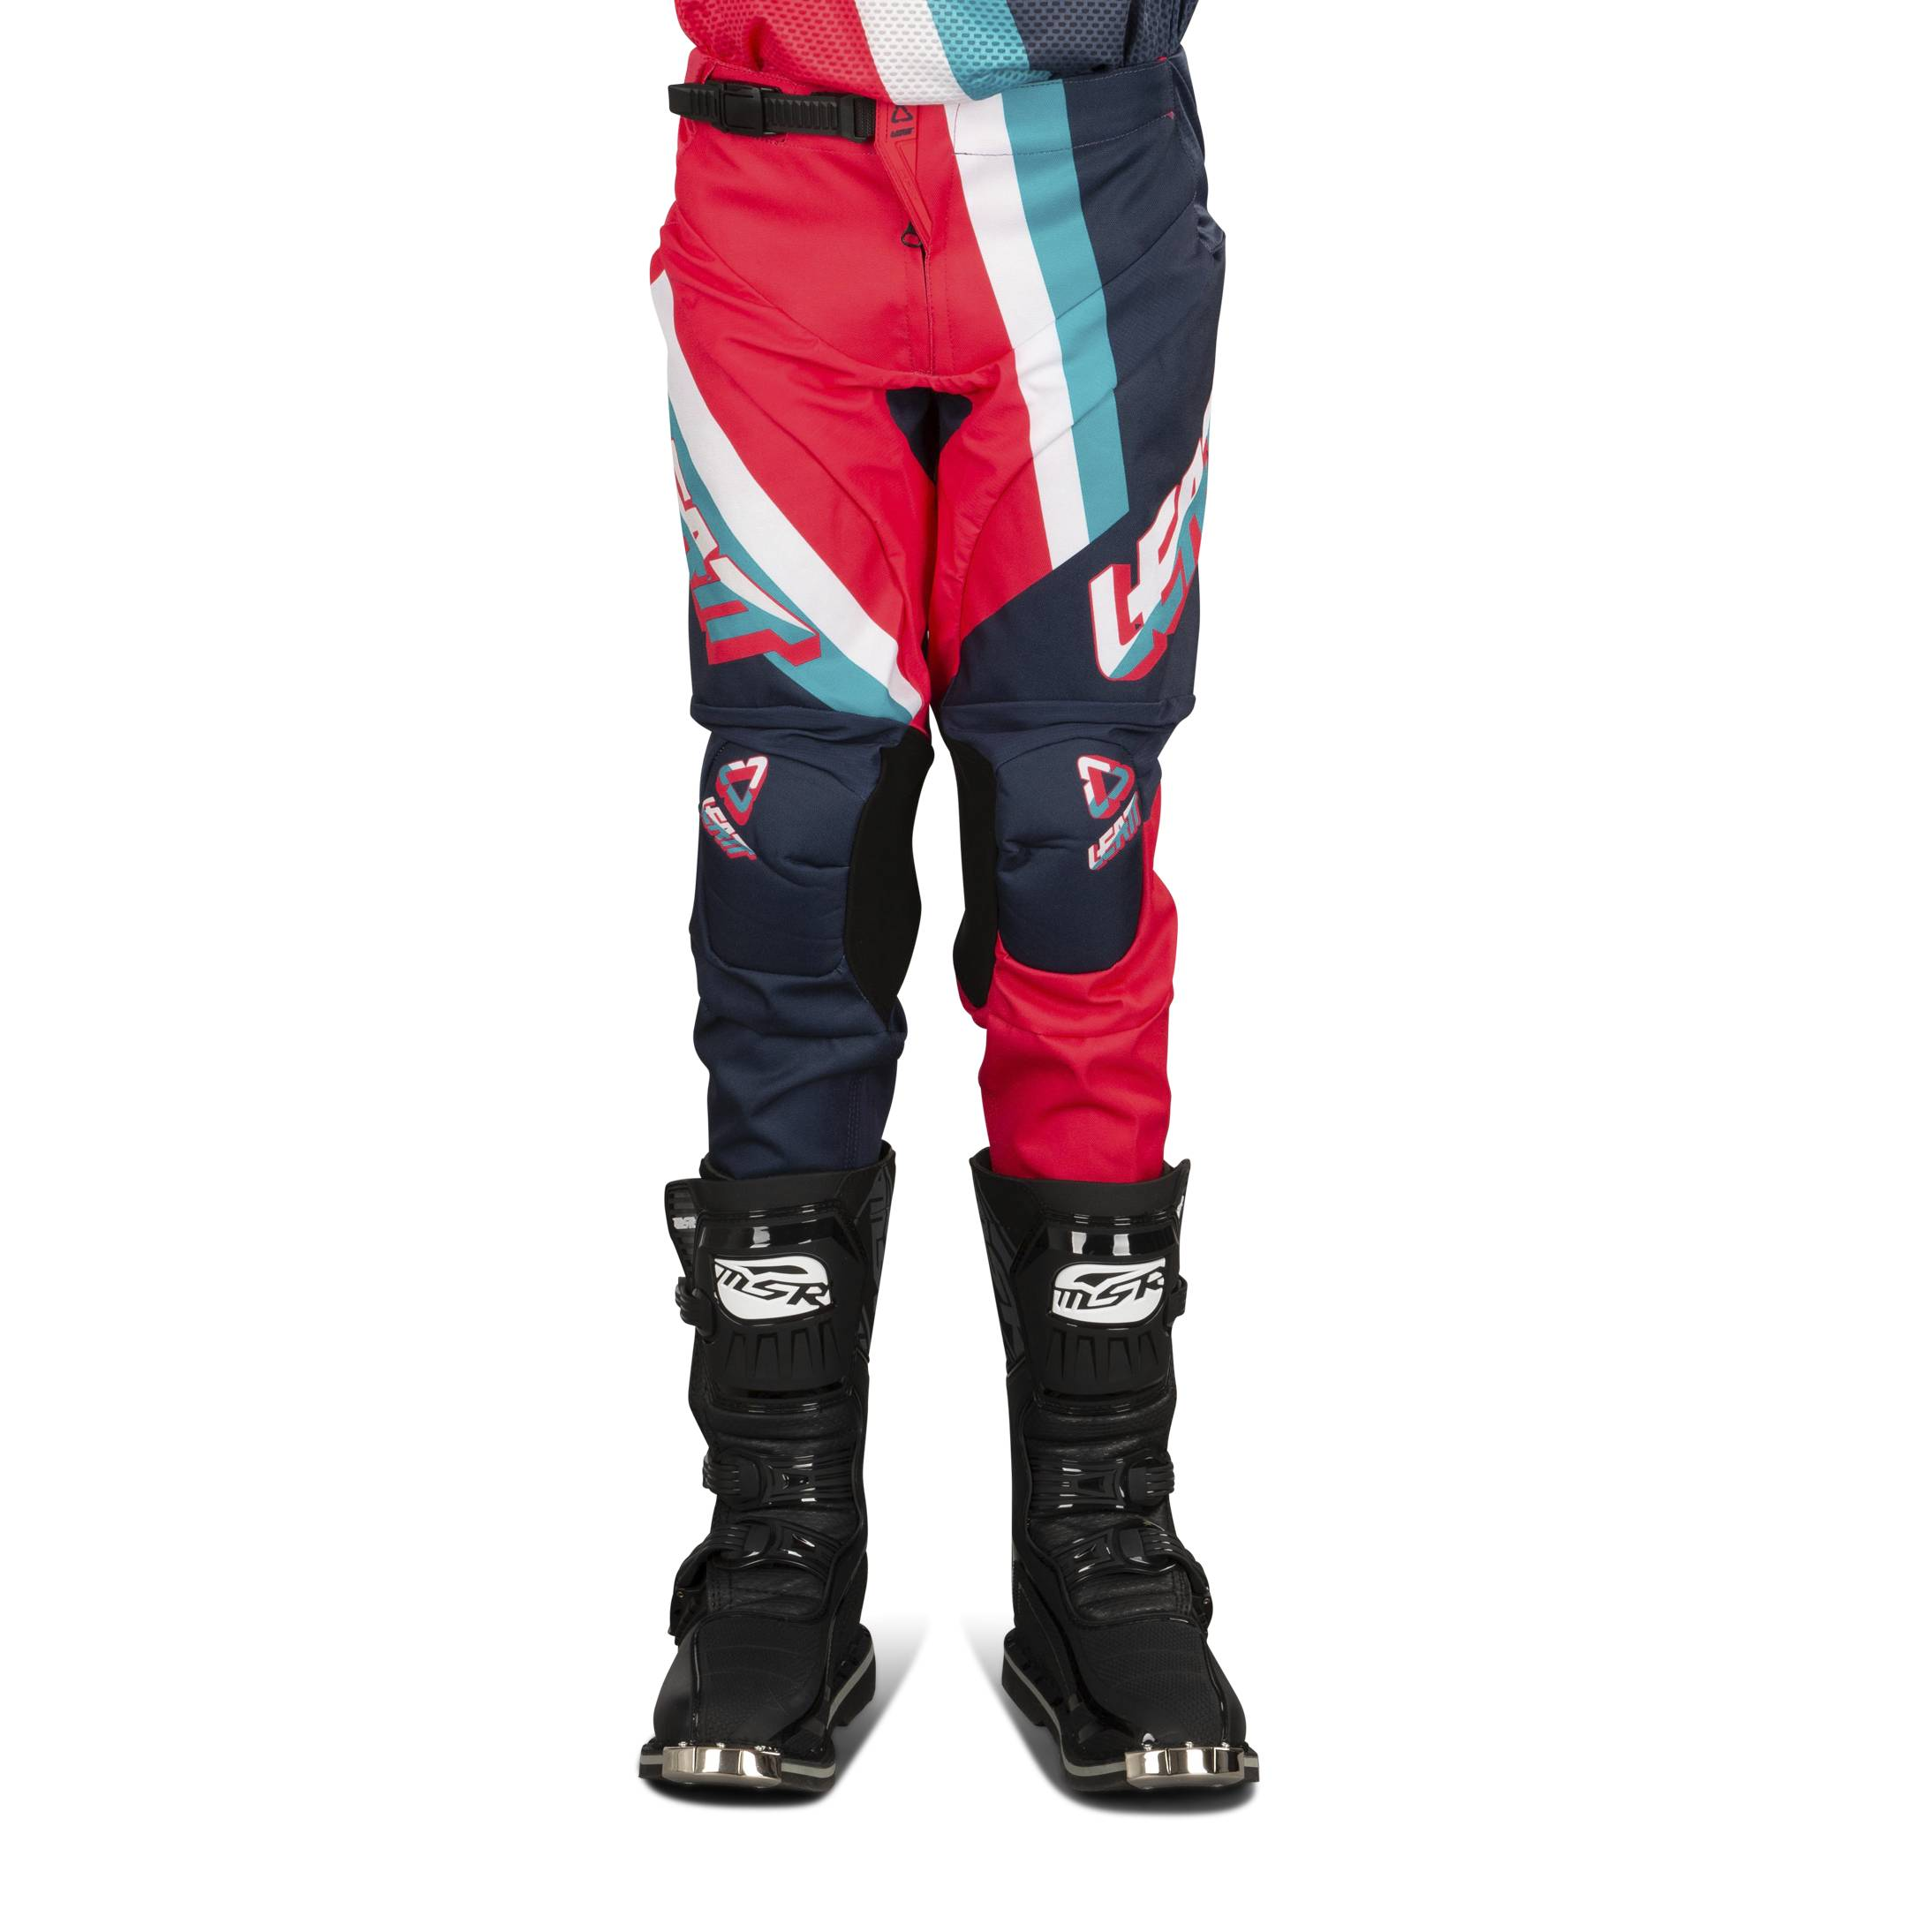 Leatt Pantalon Cross Enfant Leatt GPX 3.5 Stadium